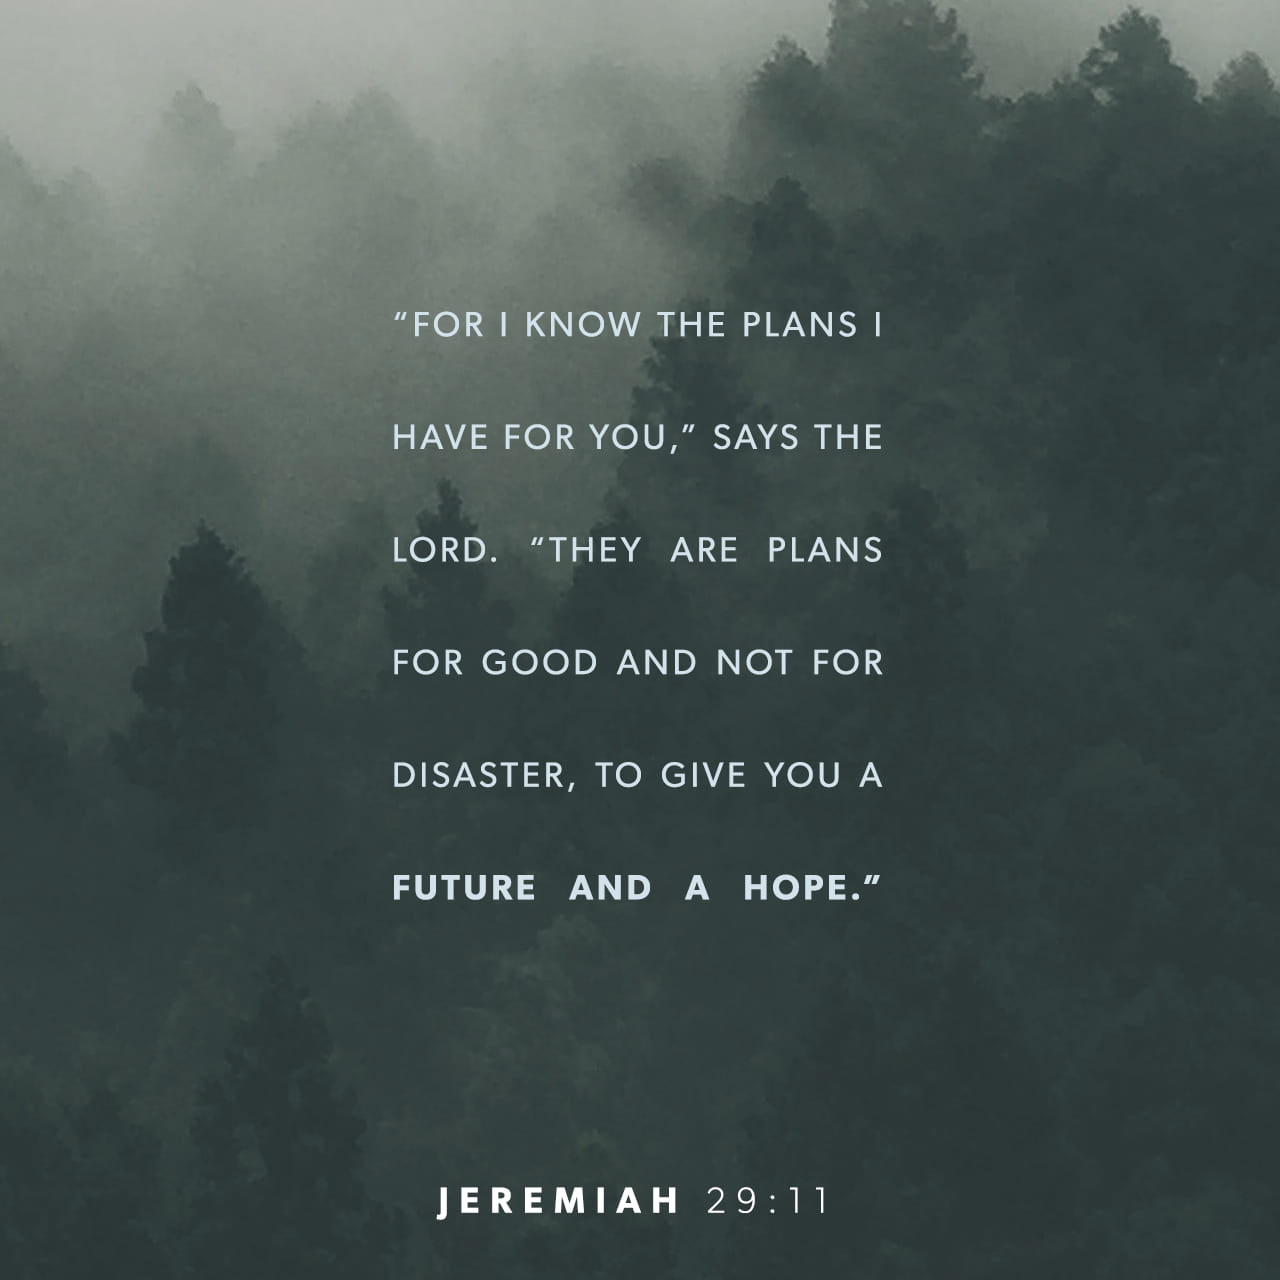 """For I know the plans I have for you,"""" says the Lord. """"They are plans for good and not for disaster, to give you a future and a hope. - Jeremiah 29:11 - Verse Image"""